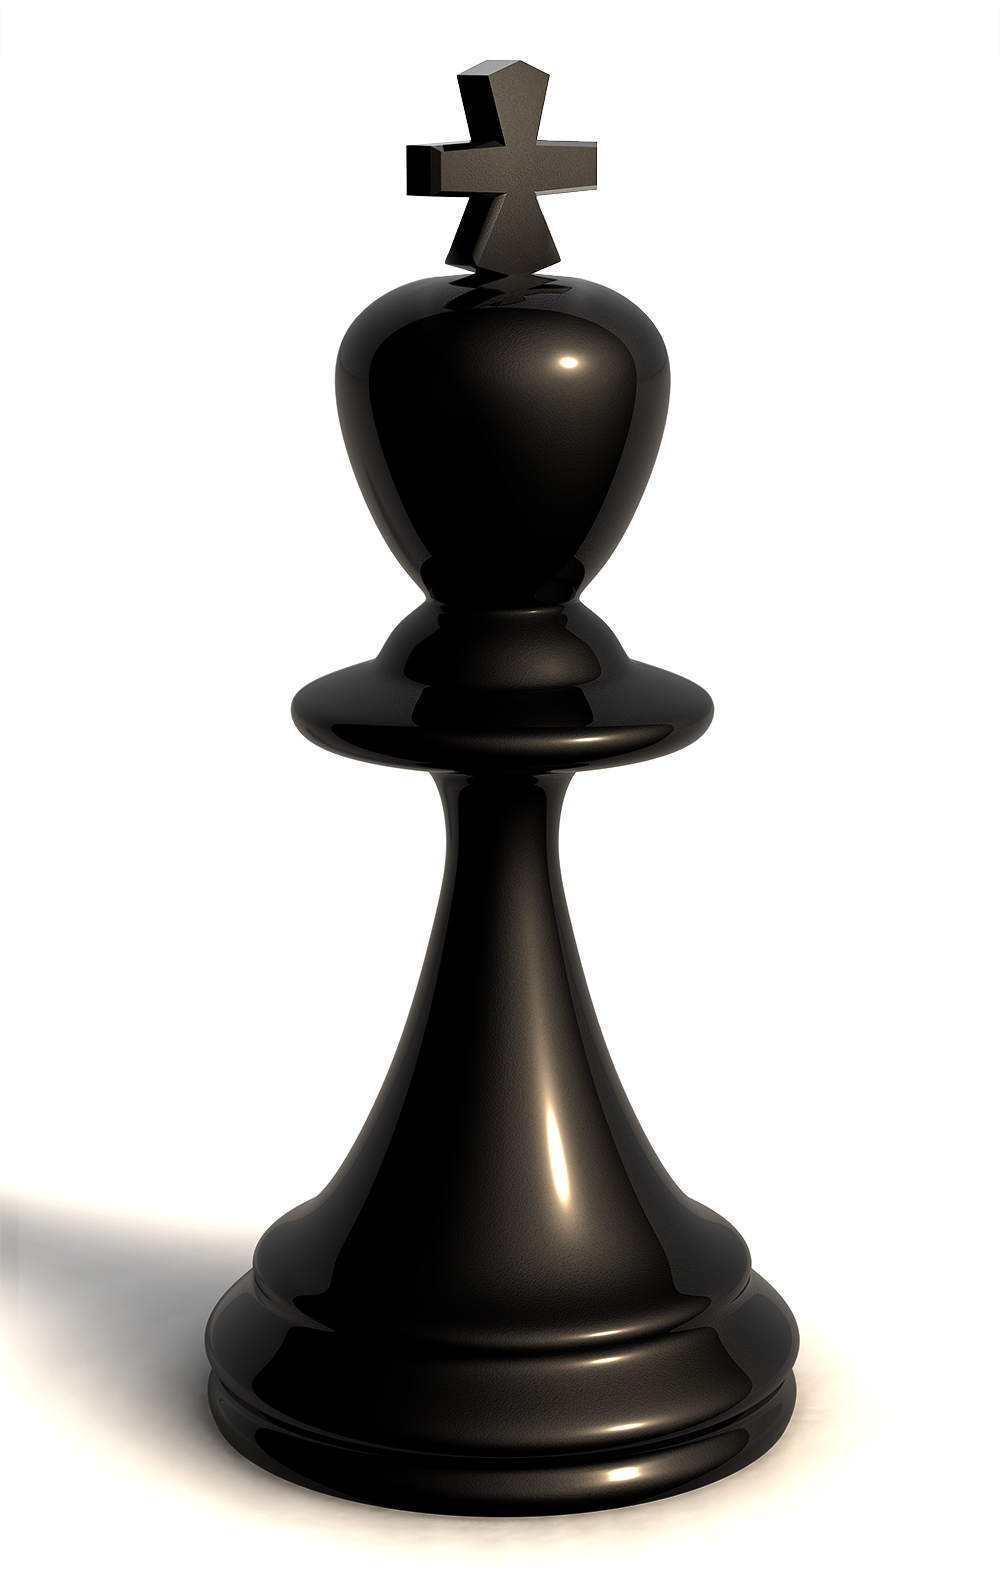 If you were a Chess piece, which one would you be ...